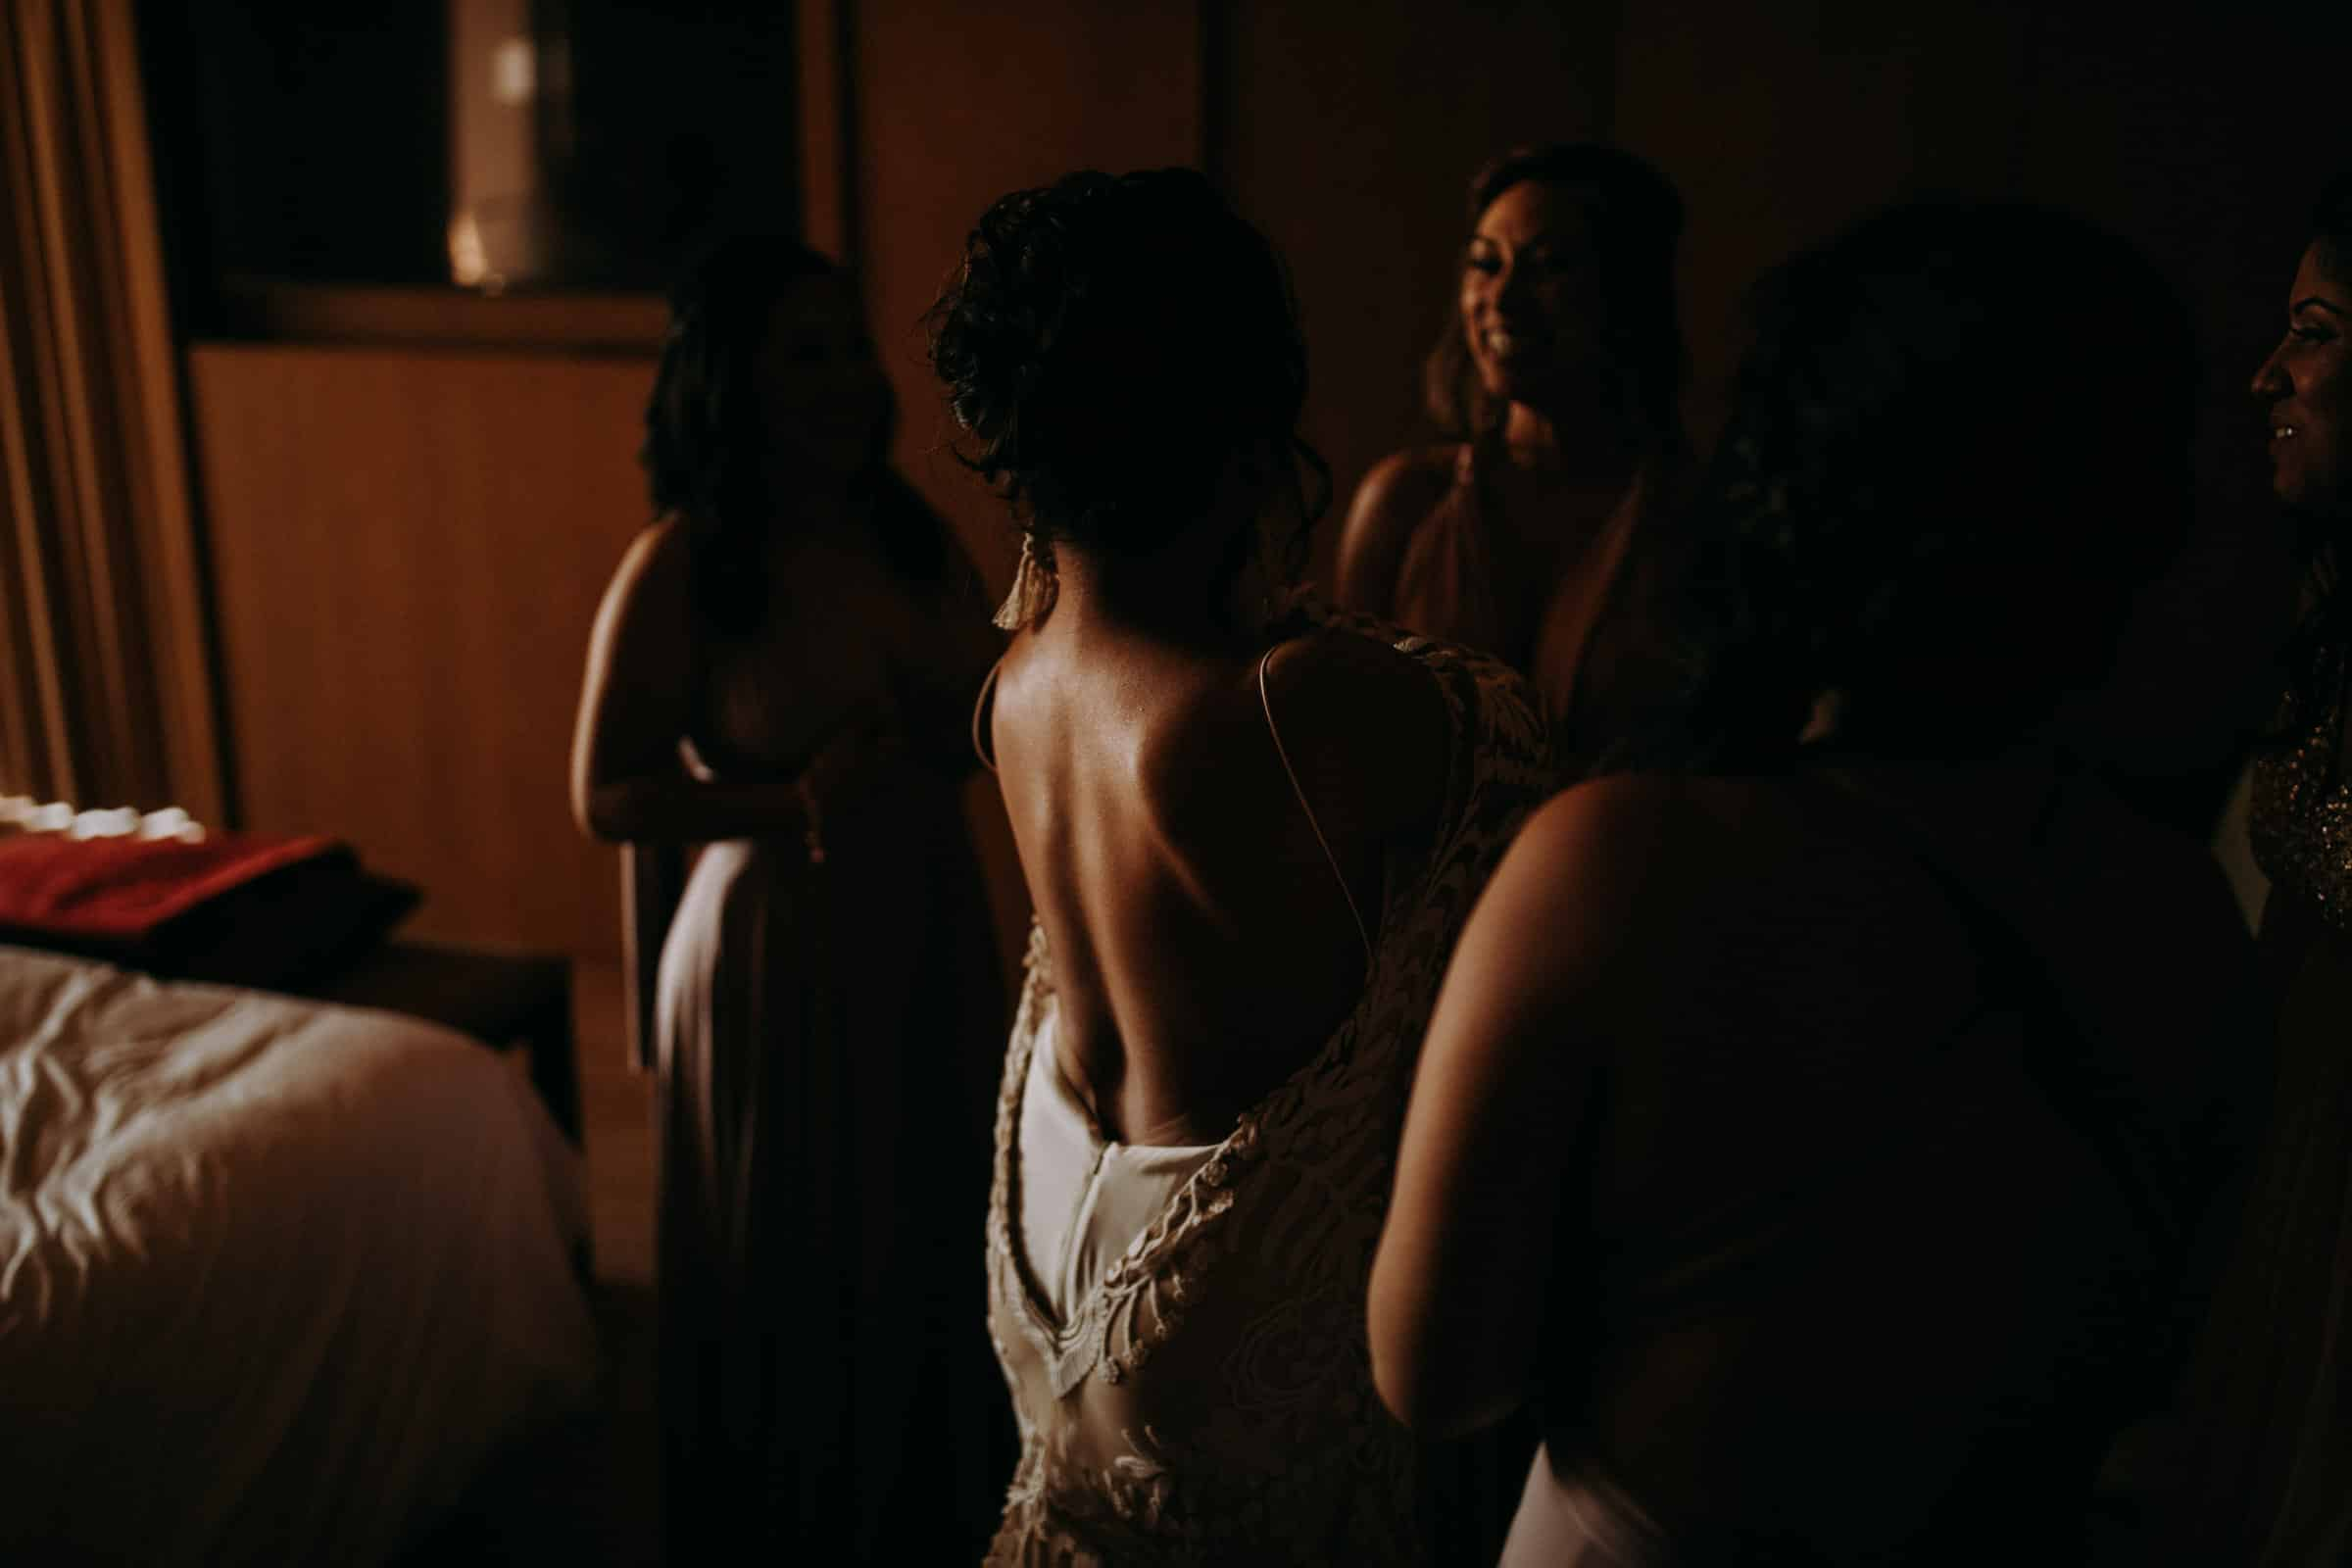 A bride is getting dressed.